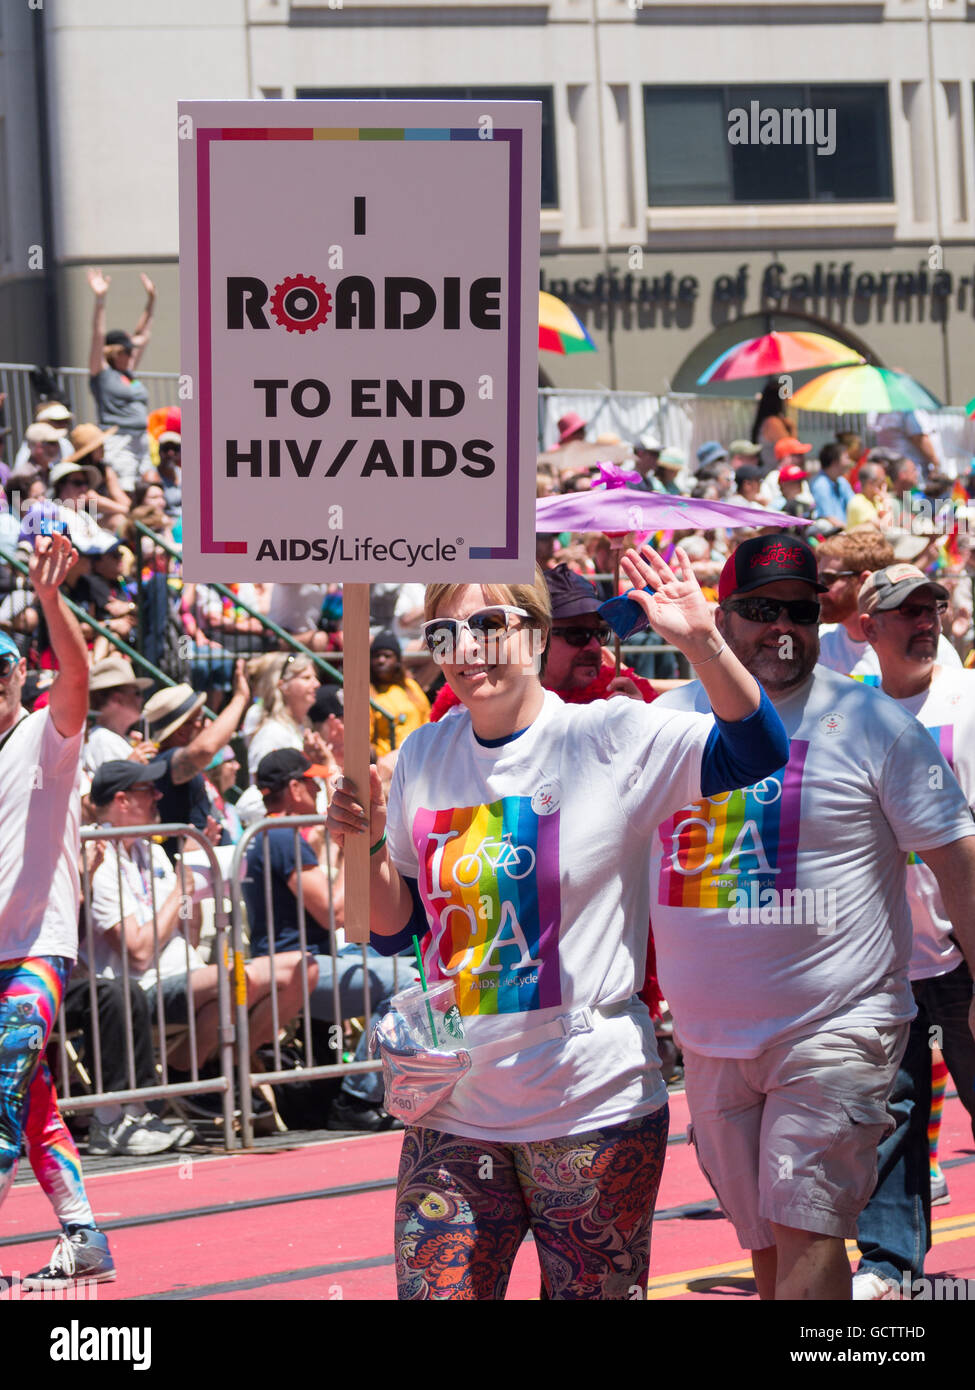 Roadies for AIDS in San Francisco Pride Parade 2016 - Stock Image